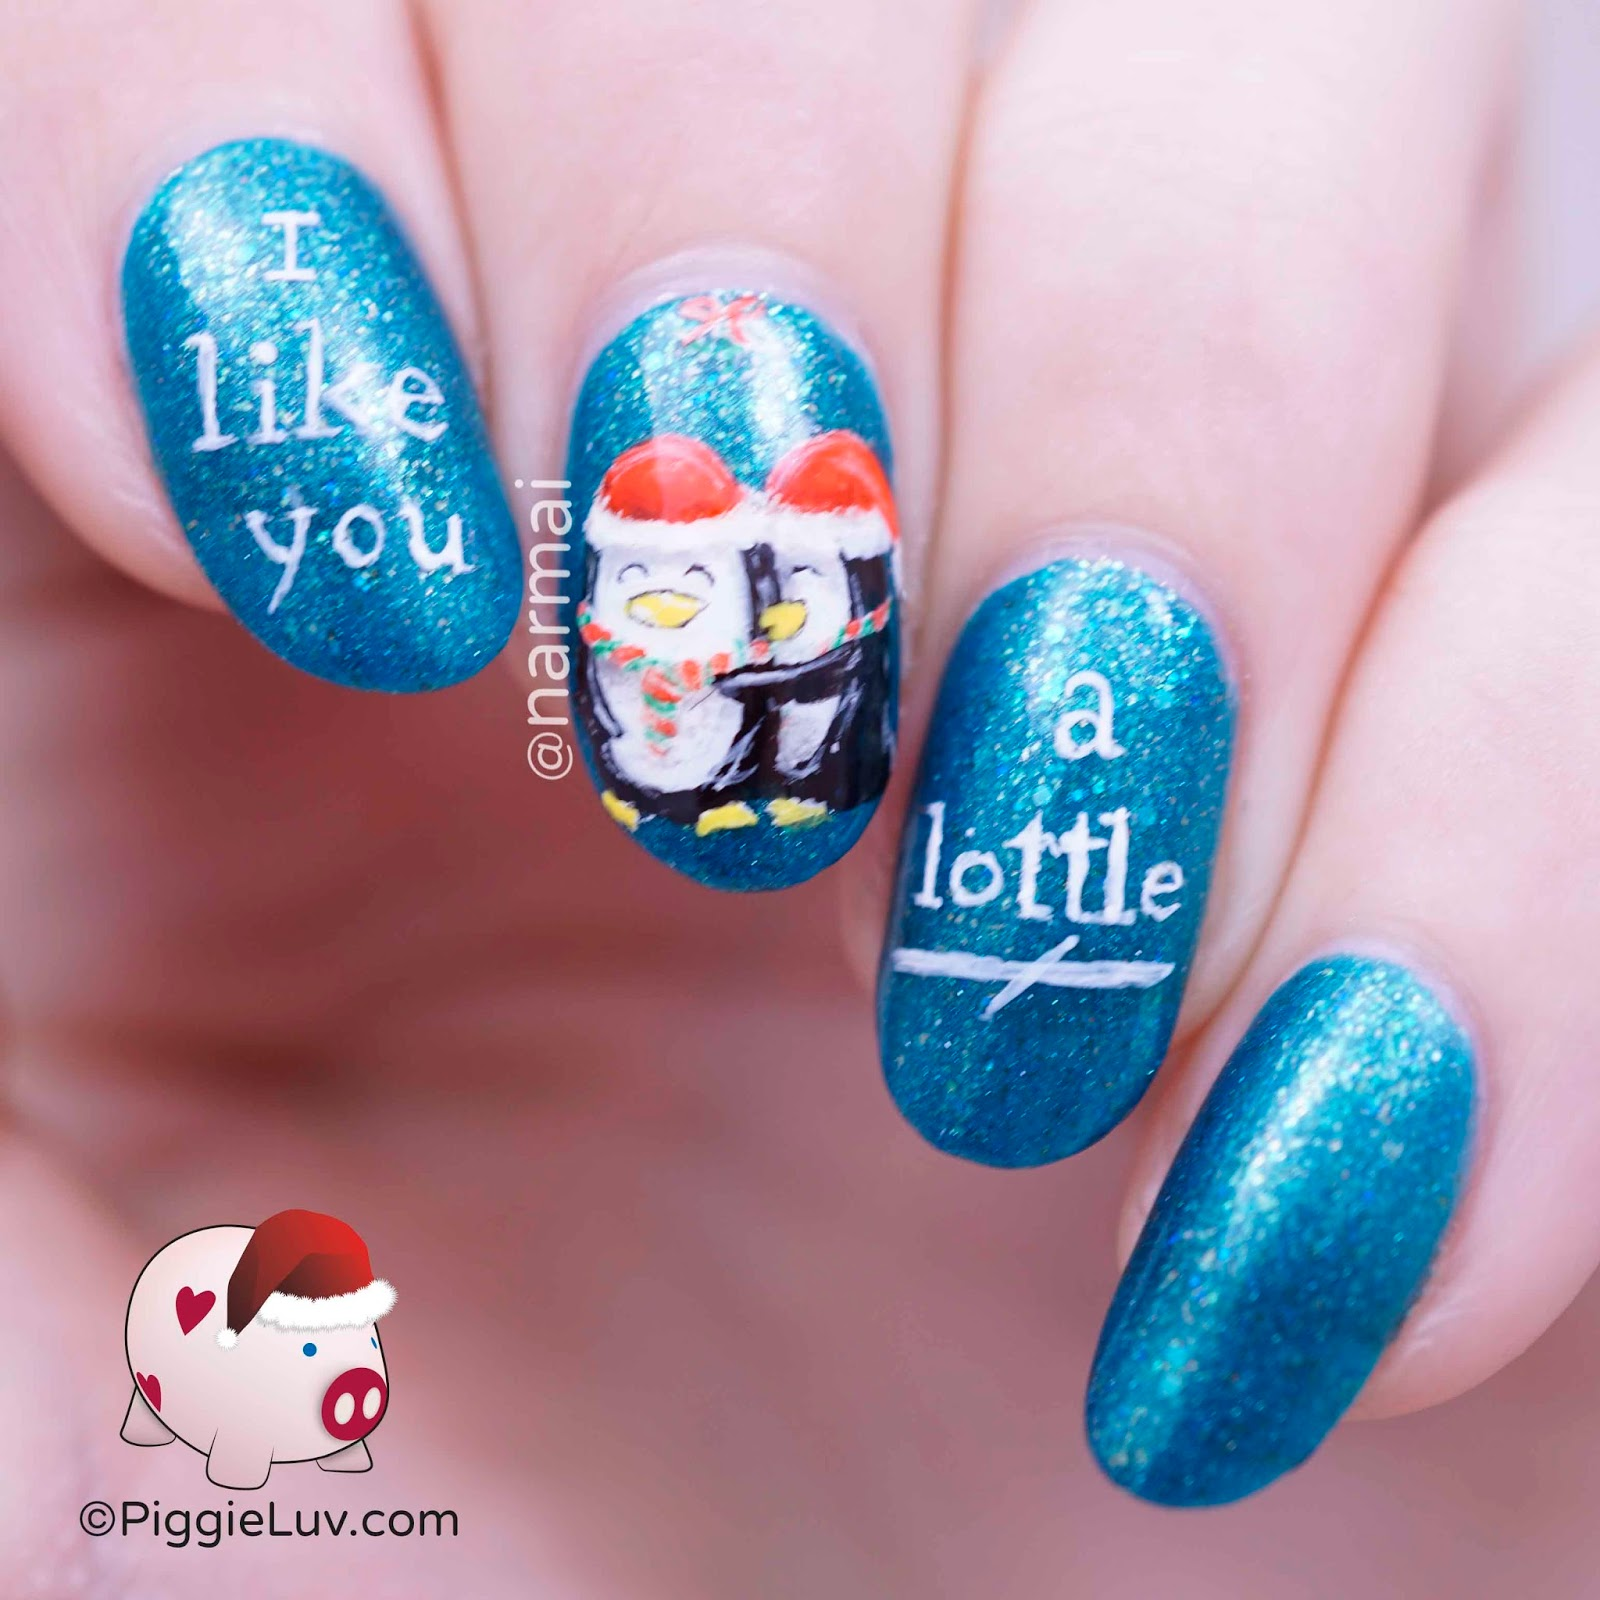 Piggieluv penguins under mistletoe nail art for christmas penguins under mistletoe nail art for christmas prinsesfo Image collections